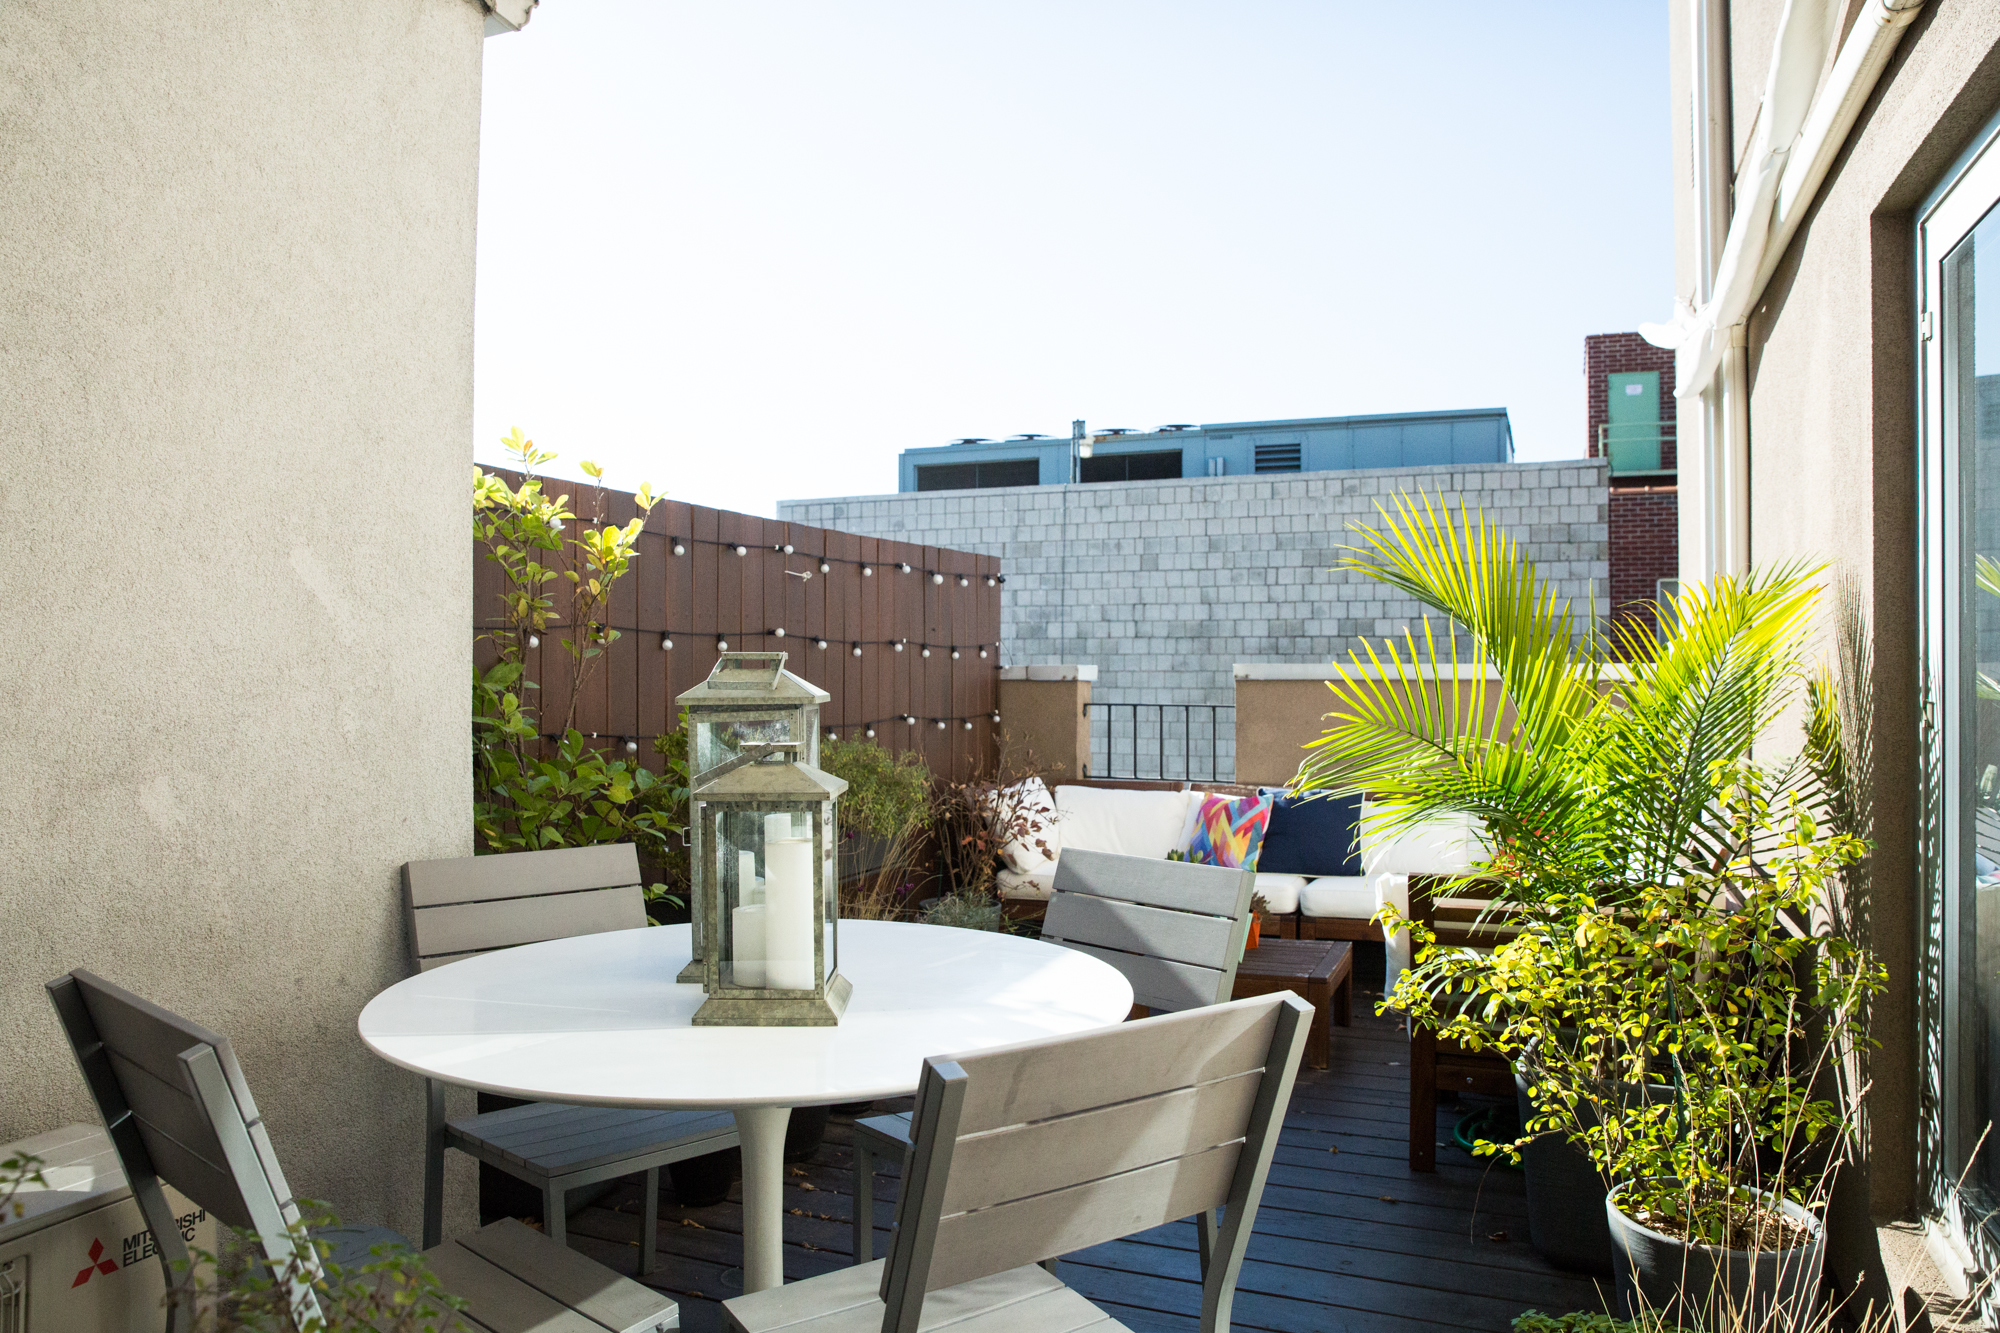 15 Smart Balcony Decorating Ideas to Steal for Your Own Space